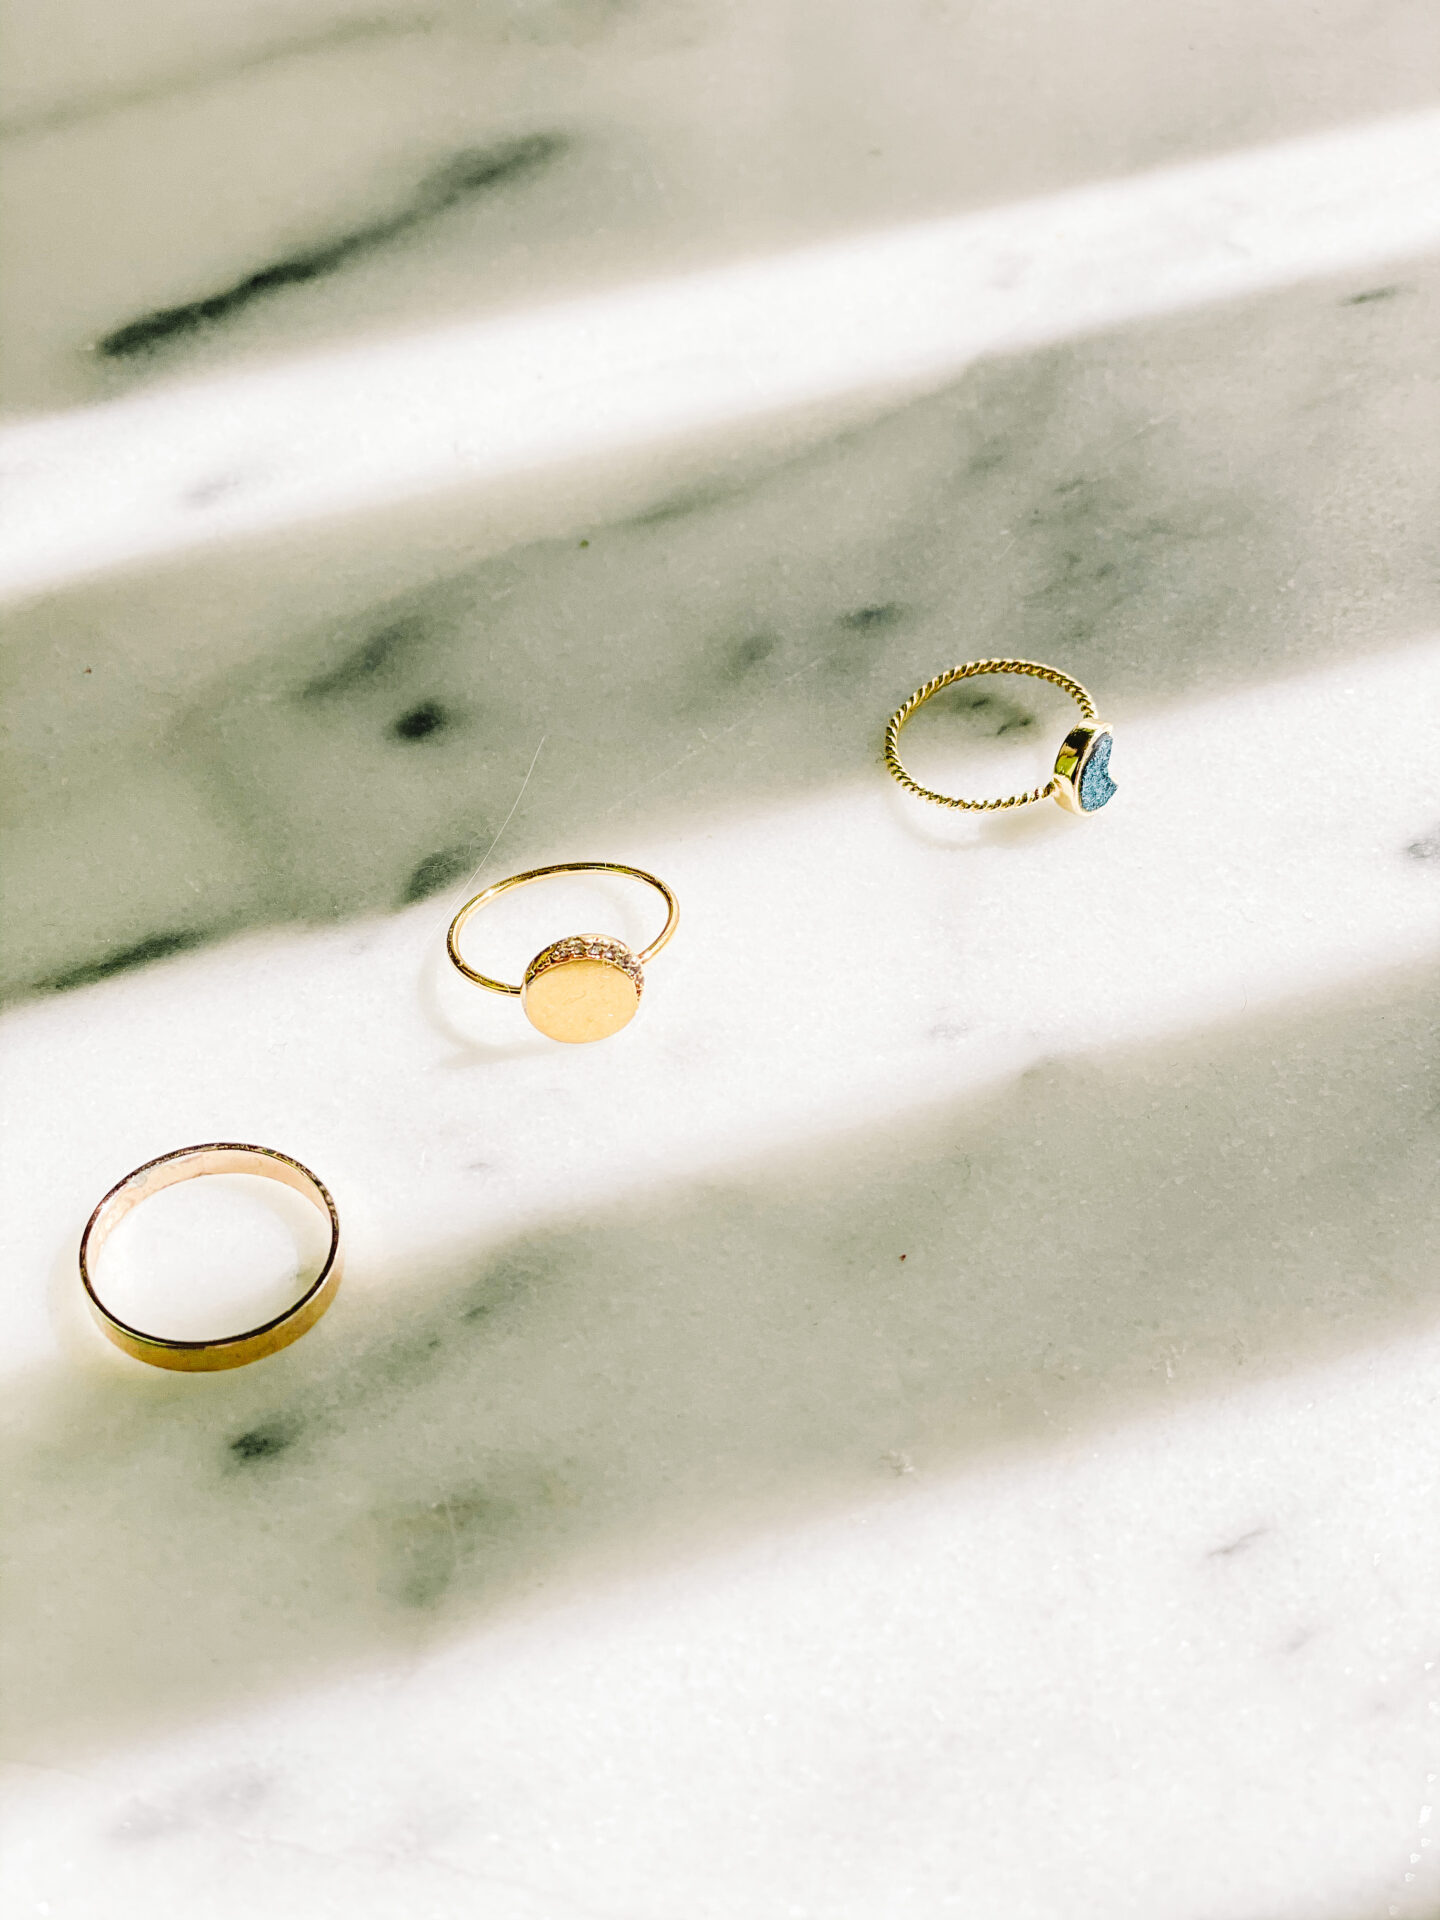 Gold dainty rings